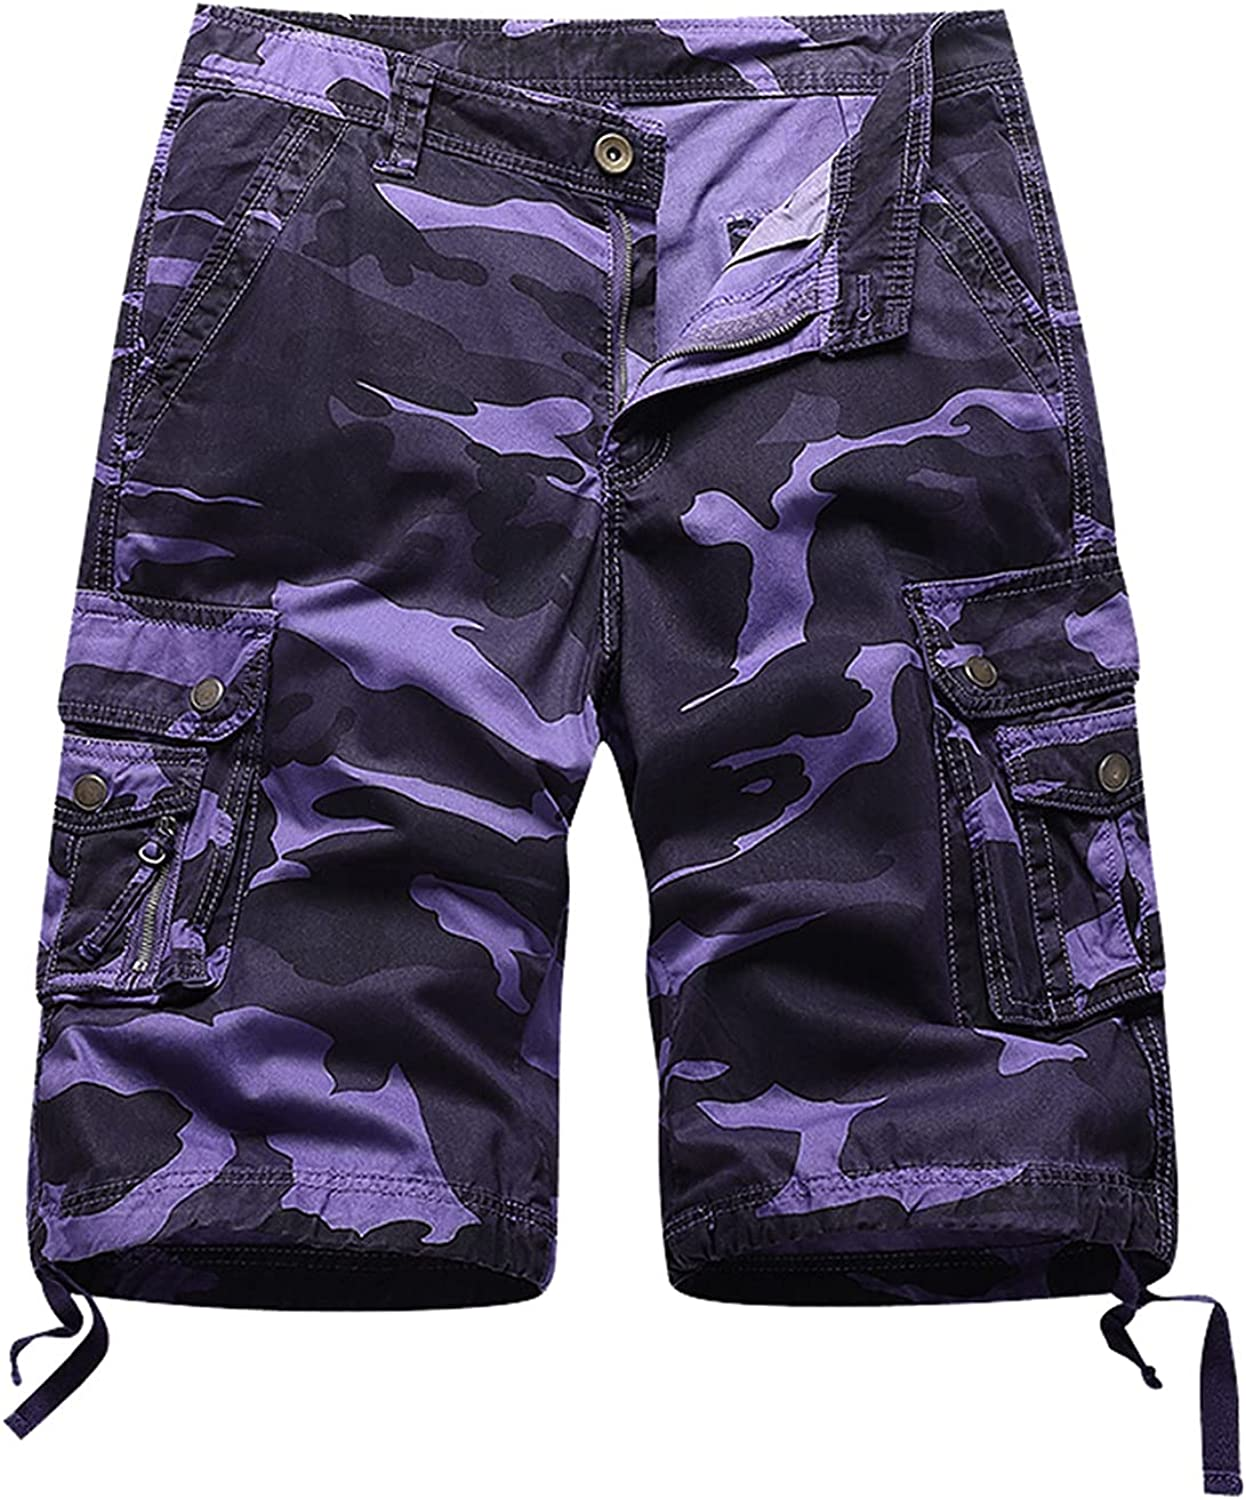 DXYDSC Men's Casual Multi Pockets Camouflage Relaxed Fit Straight Leg Cargo Shorts